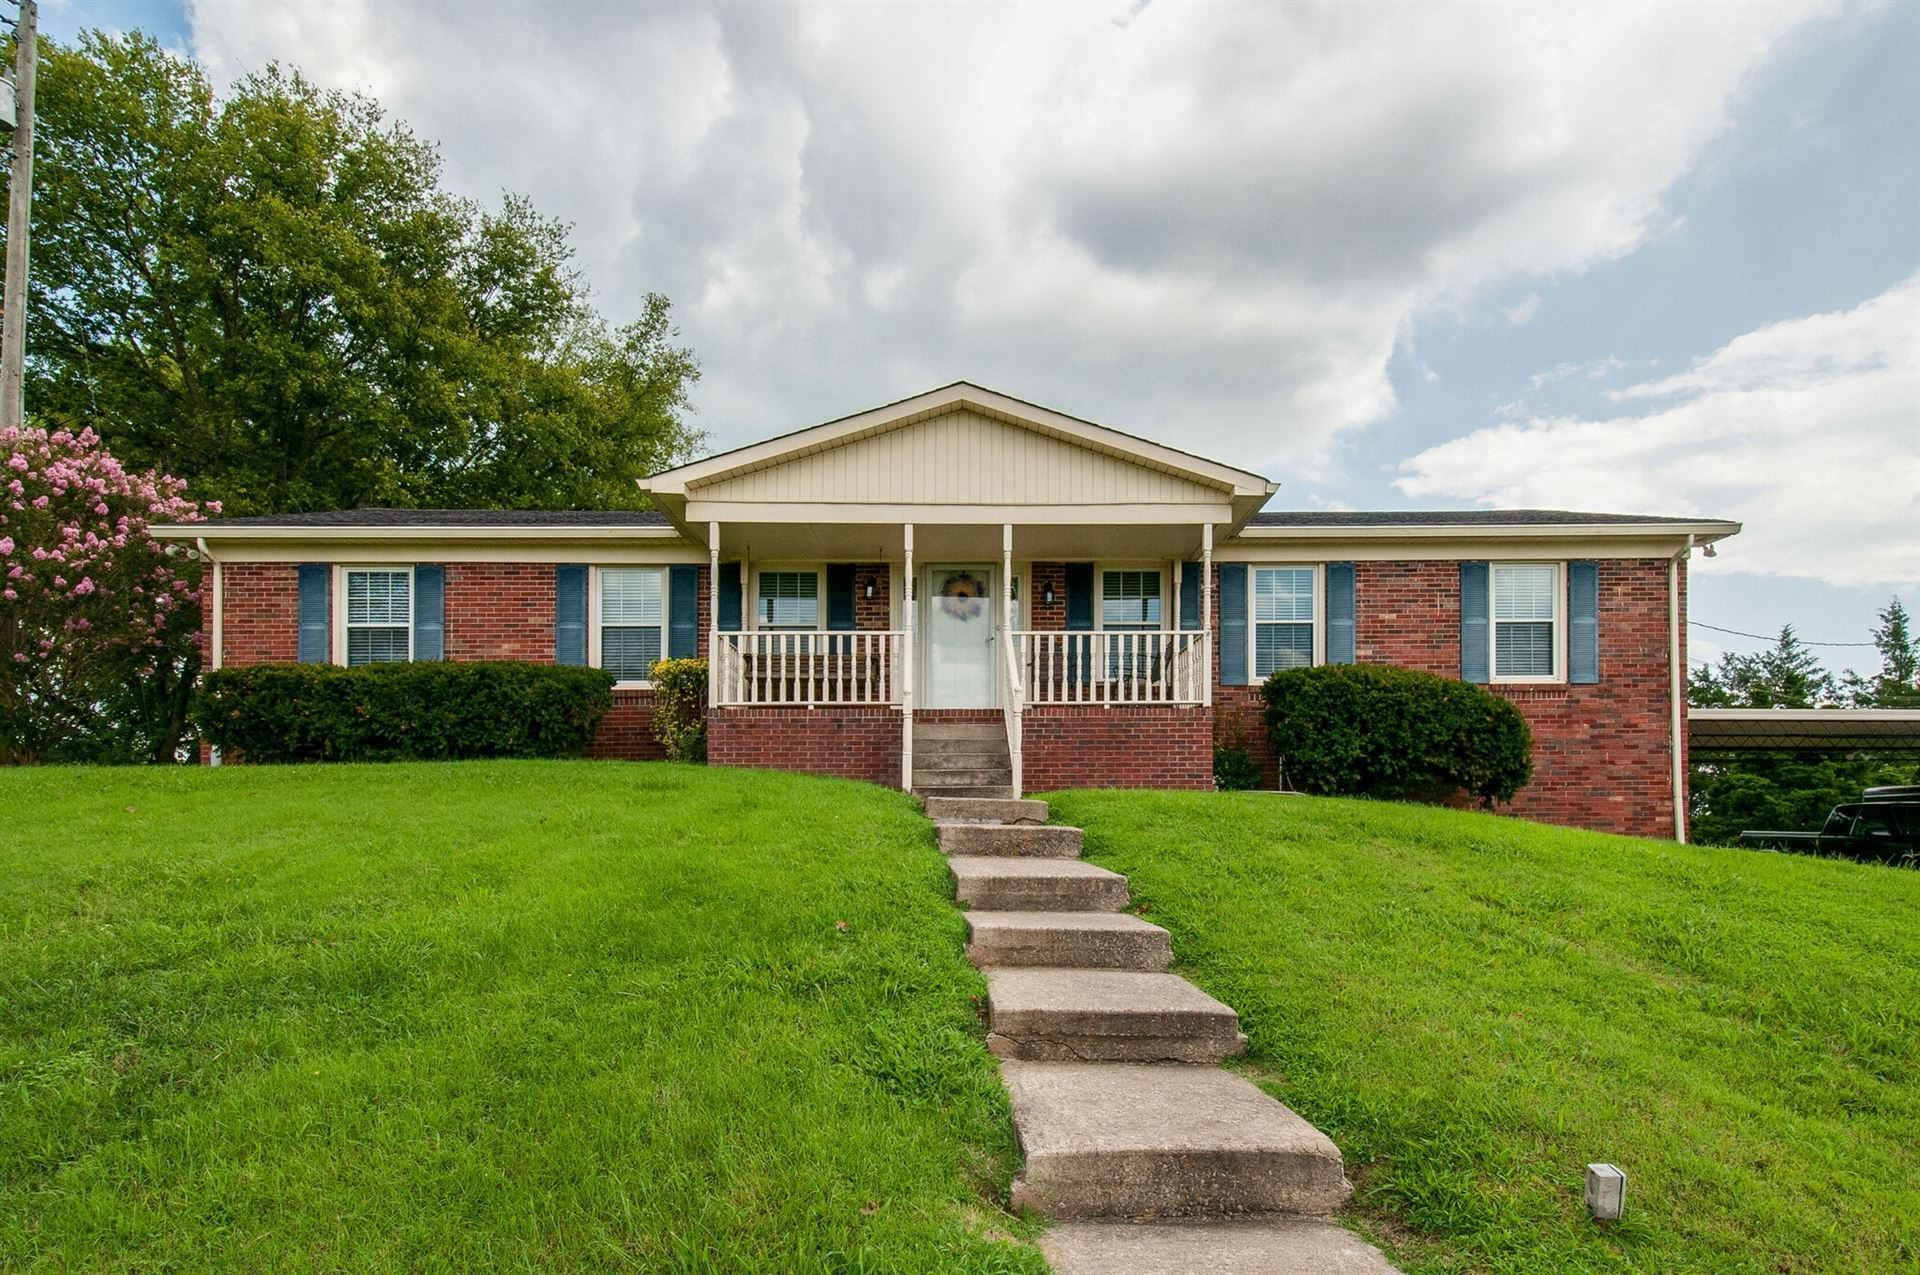 603 Katy Hill Dr, Goodlettsville, TN 37072 - MLS#: 2220803